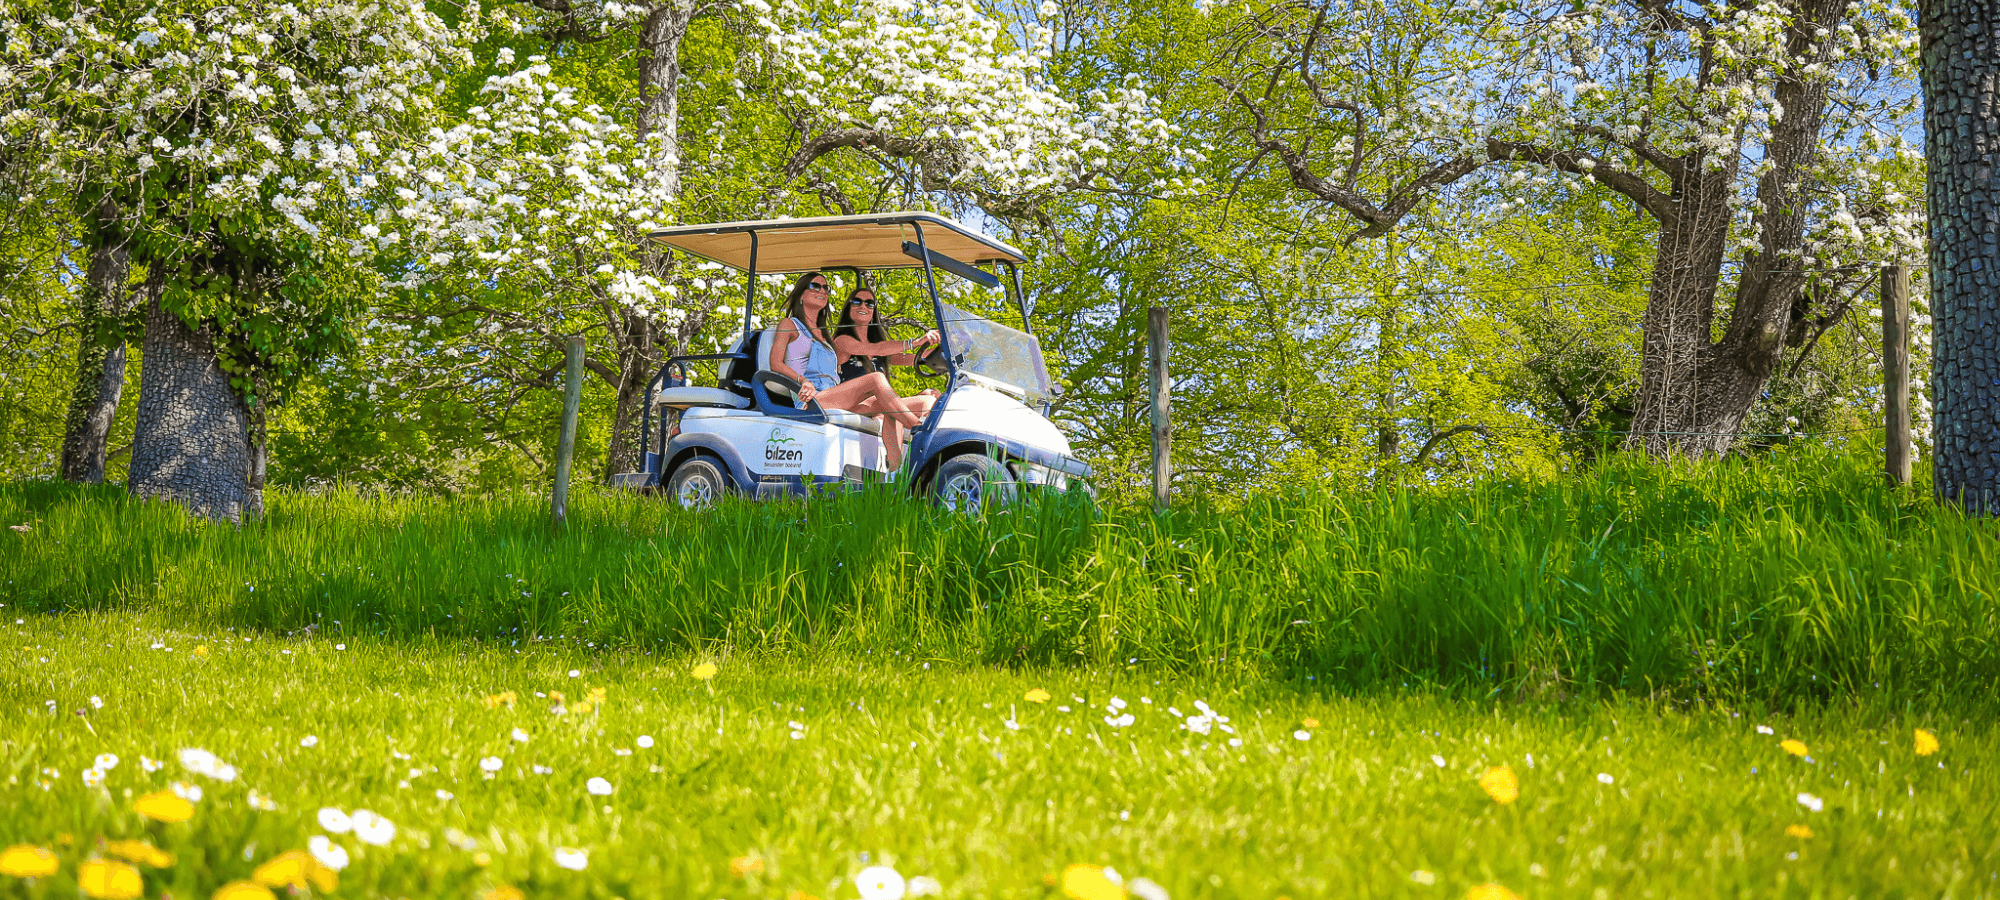 Two women riding an electric golf cart in the Belgian countryside